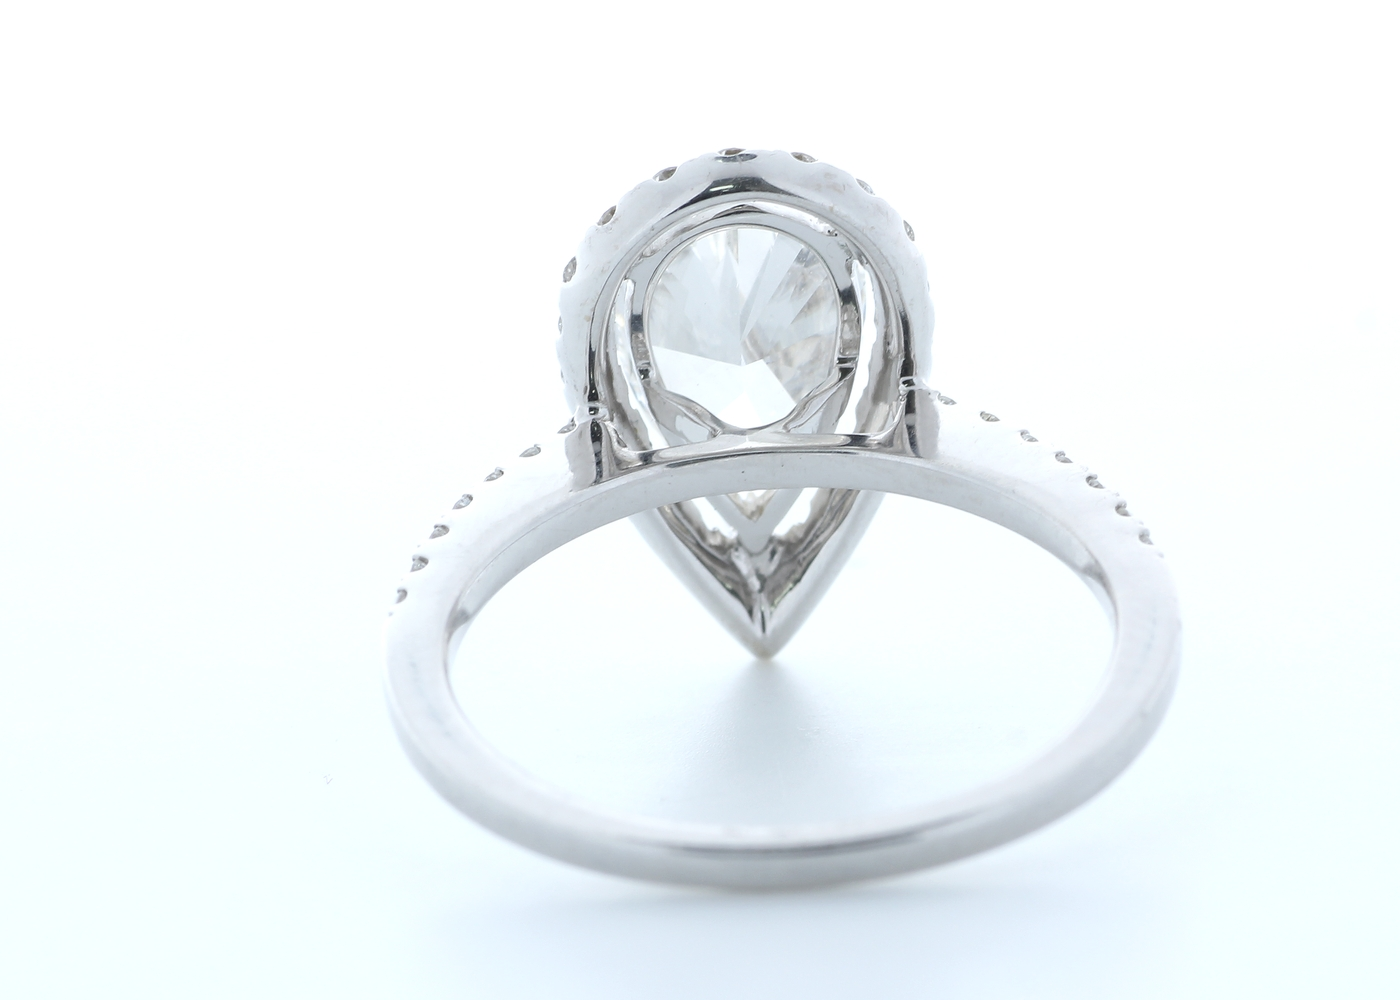 18ct White Gold Single Stone With Halo Setting Ring 2.54 (2.04) Carats - Image 3 of 5